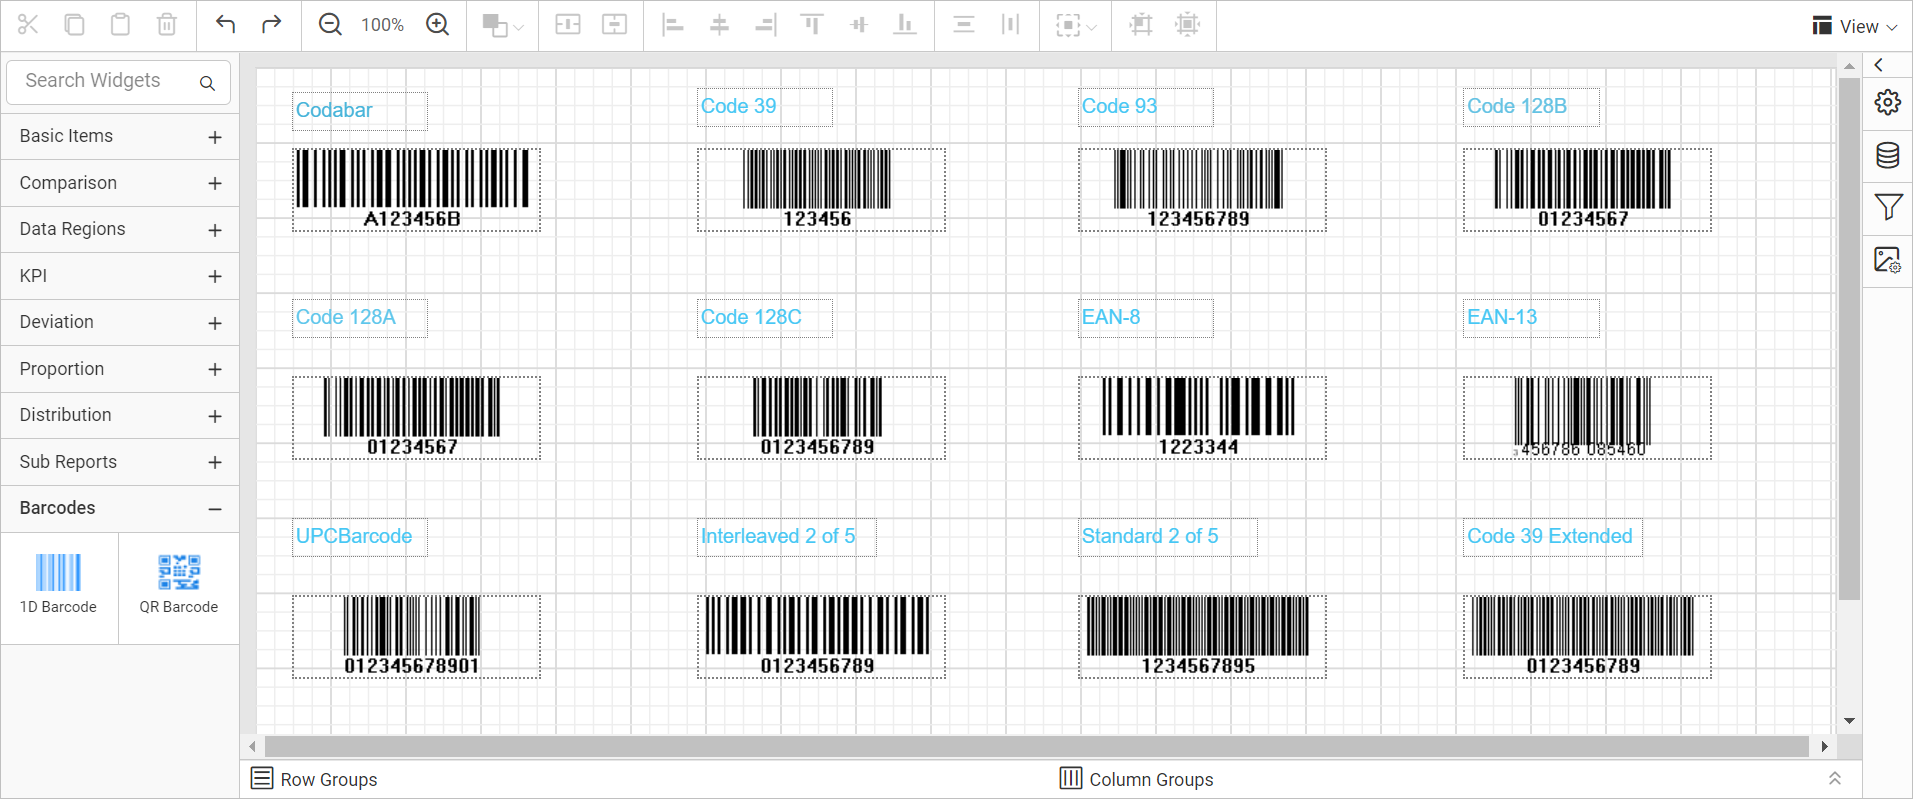 Types of 1-D barcode